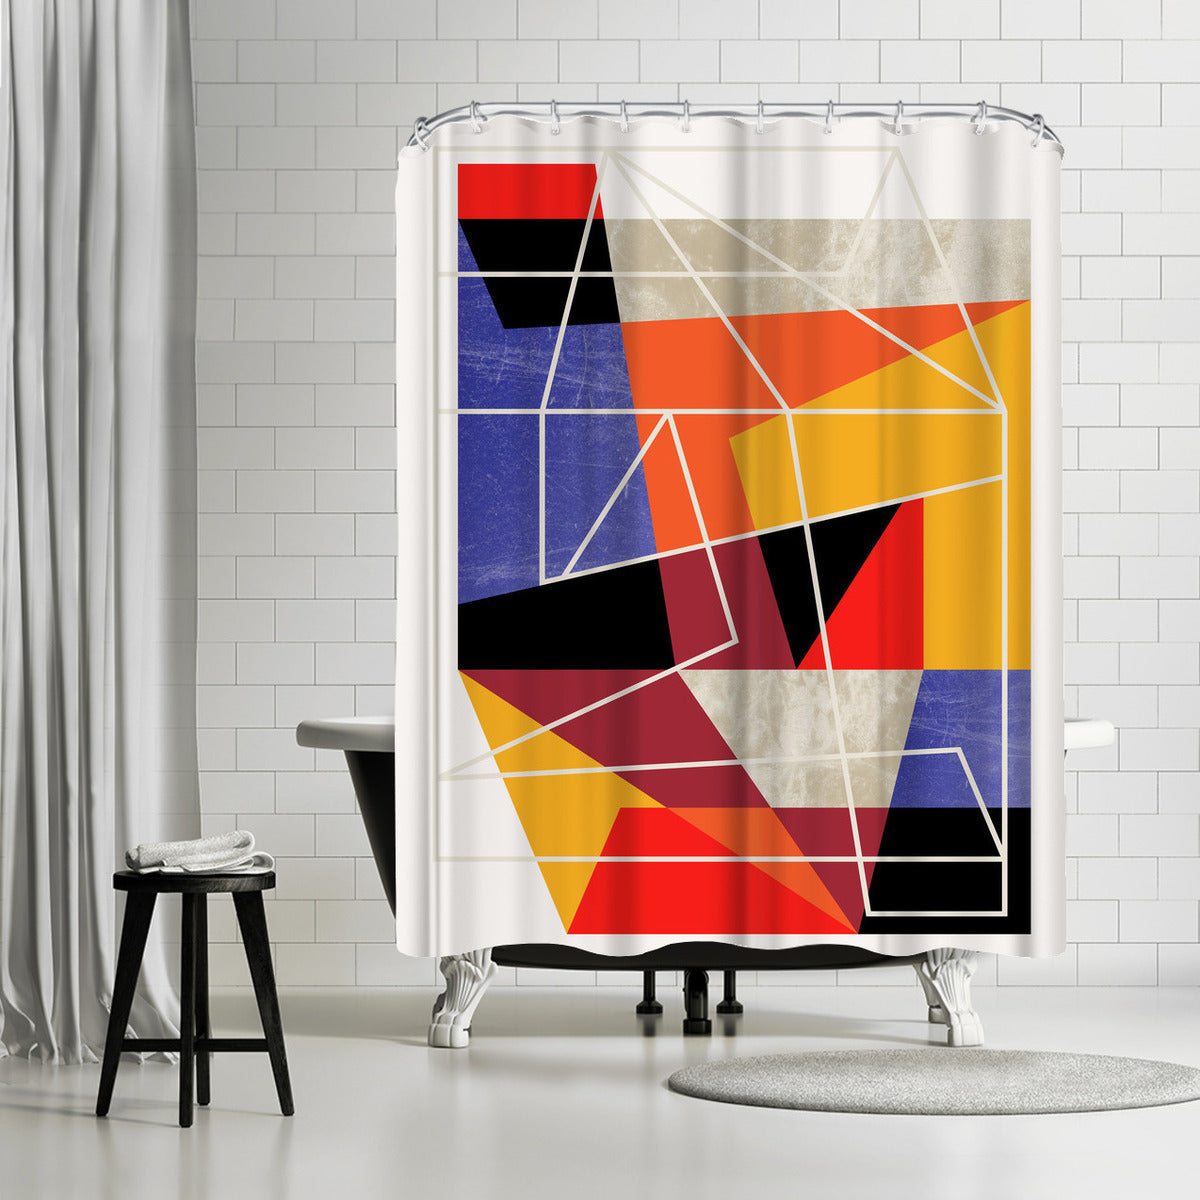 Colorblock Vii by Susana Paz Shower Curtain - Shower Curtain - Americanflat